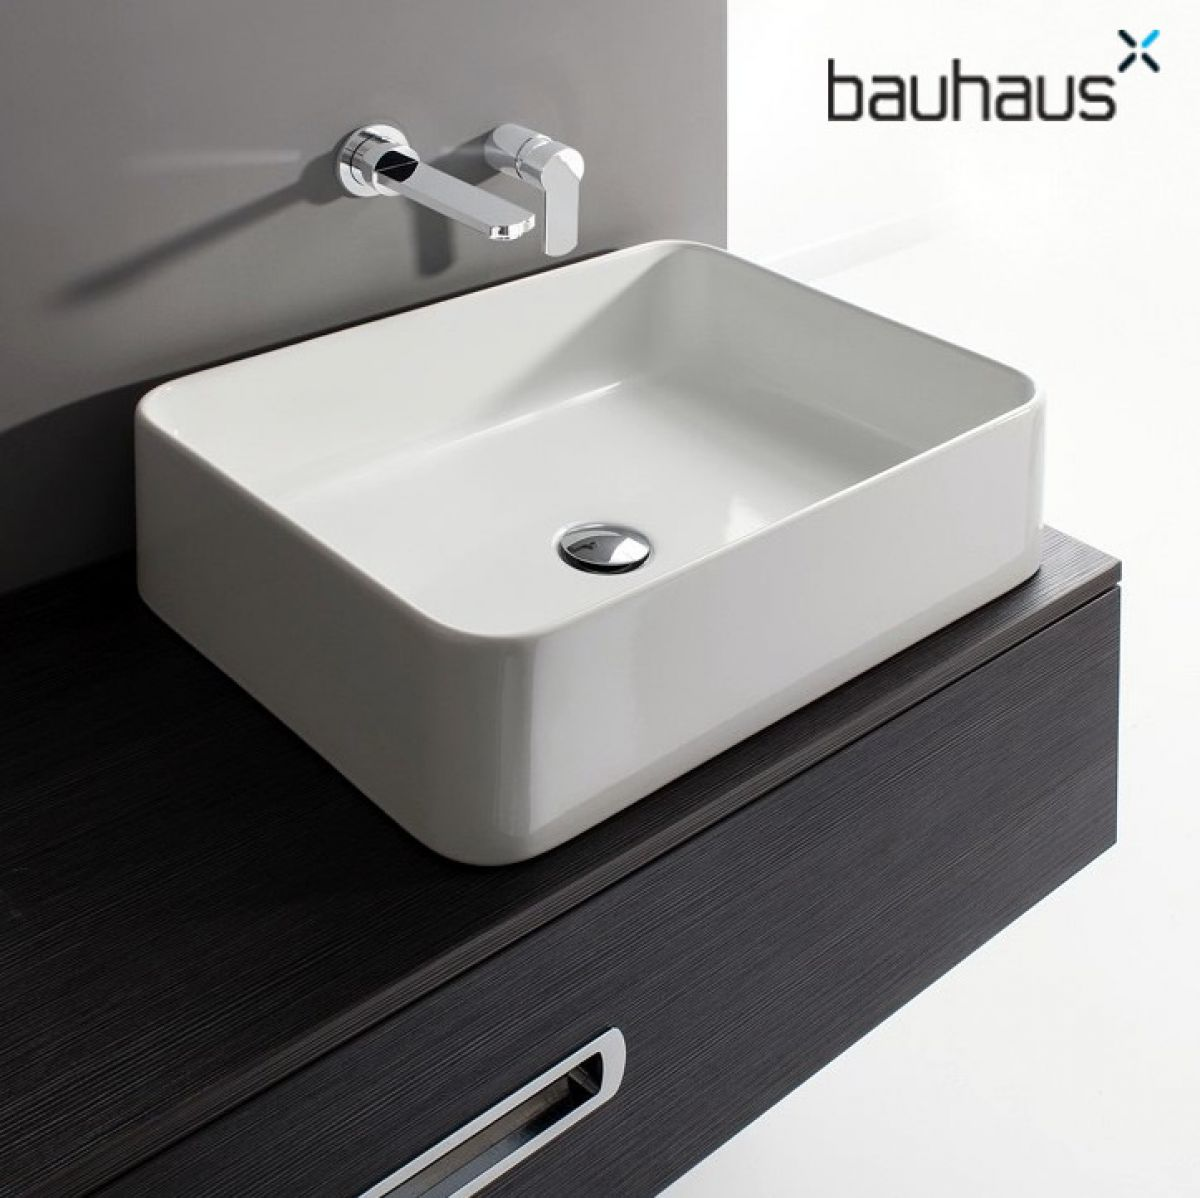 bauhaus santa fe countertop basin uk bathrooms. Black Bedroom Furniture Sets. Home Design Ideas